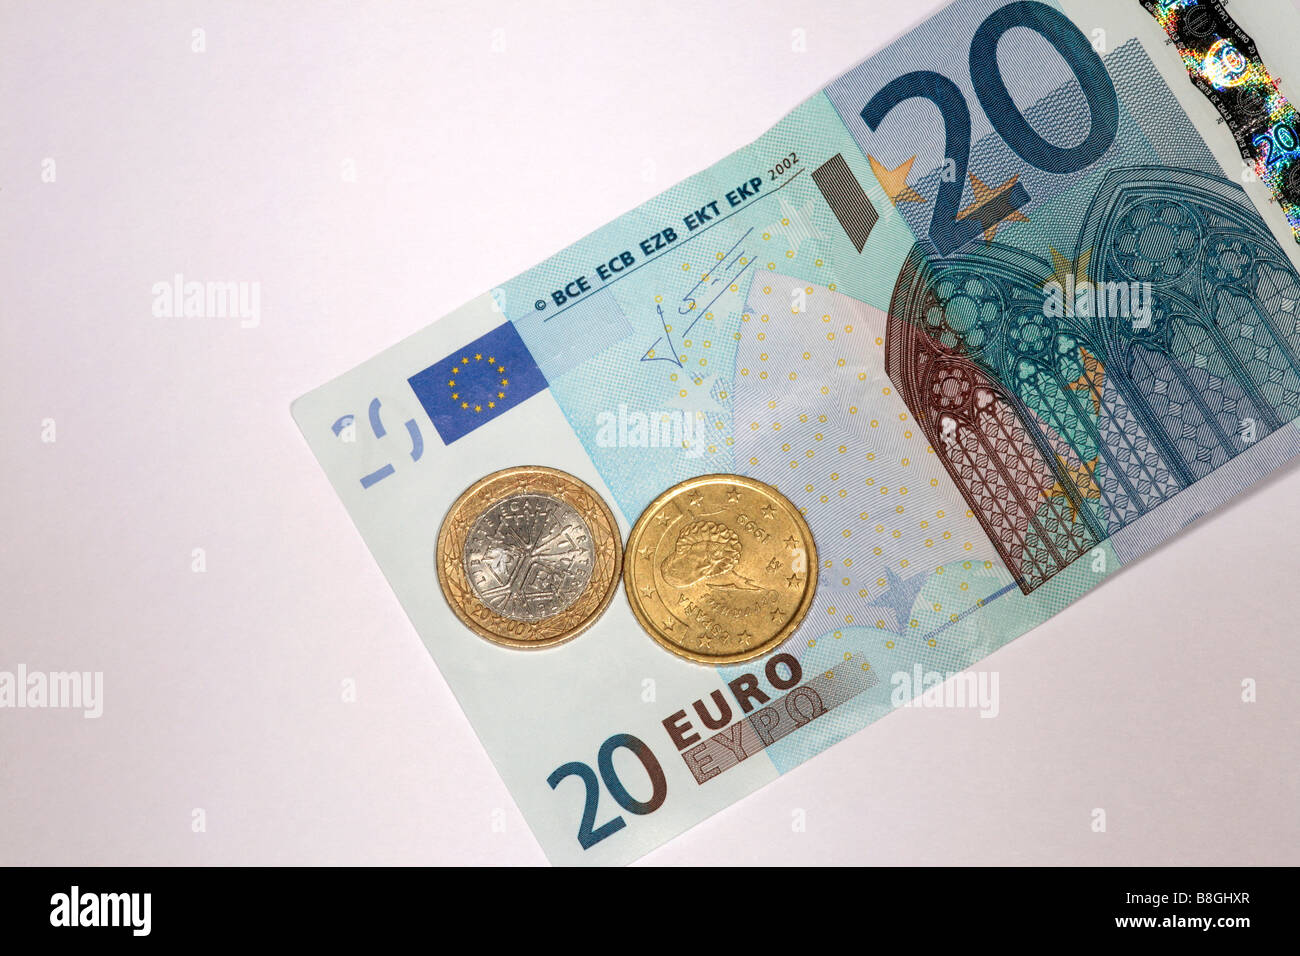 20 euro note with coins - Stock Image